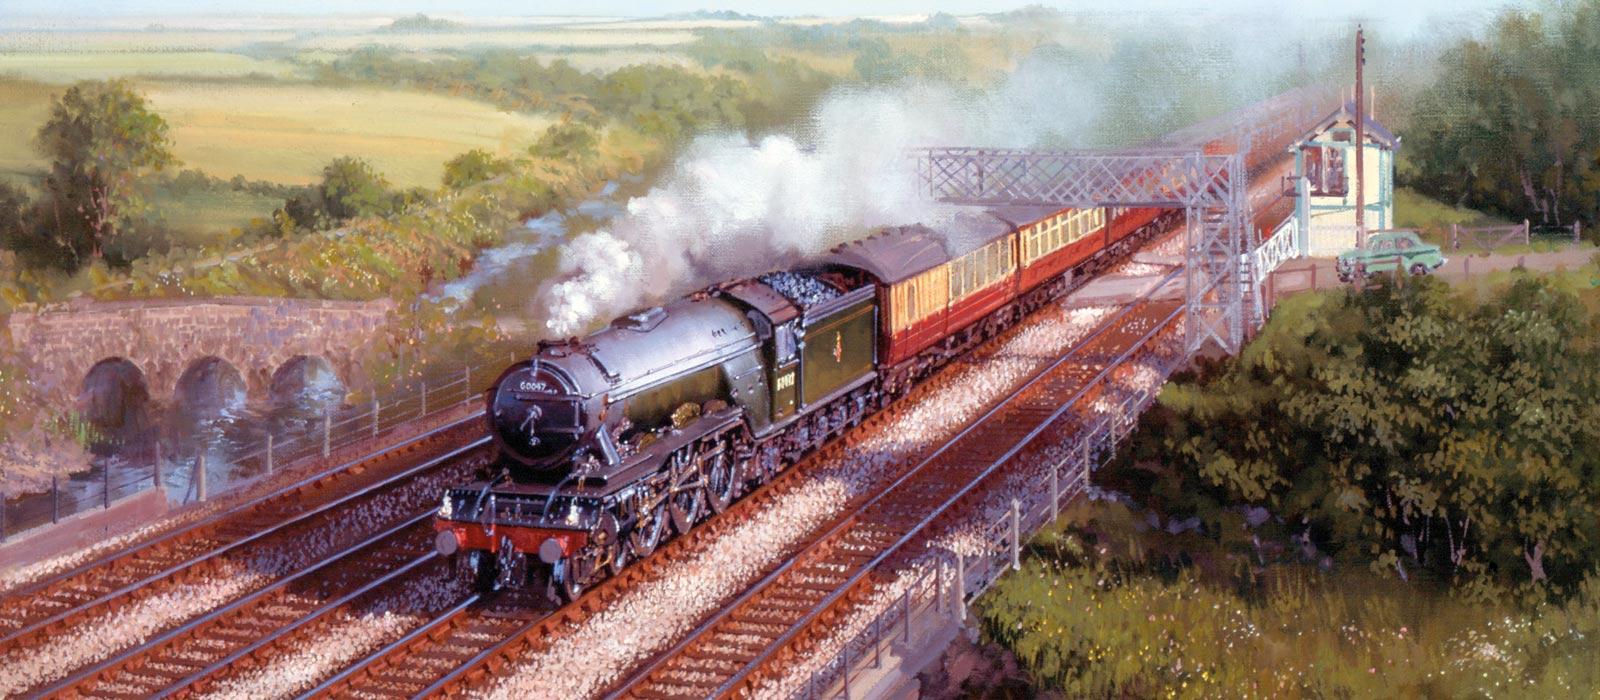 Painting of a steam train